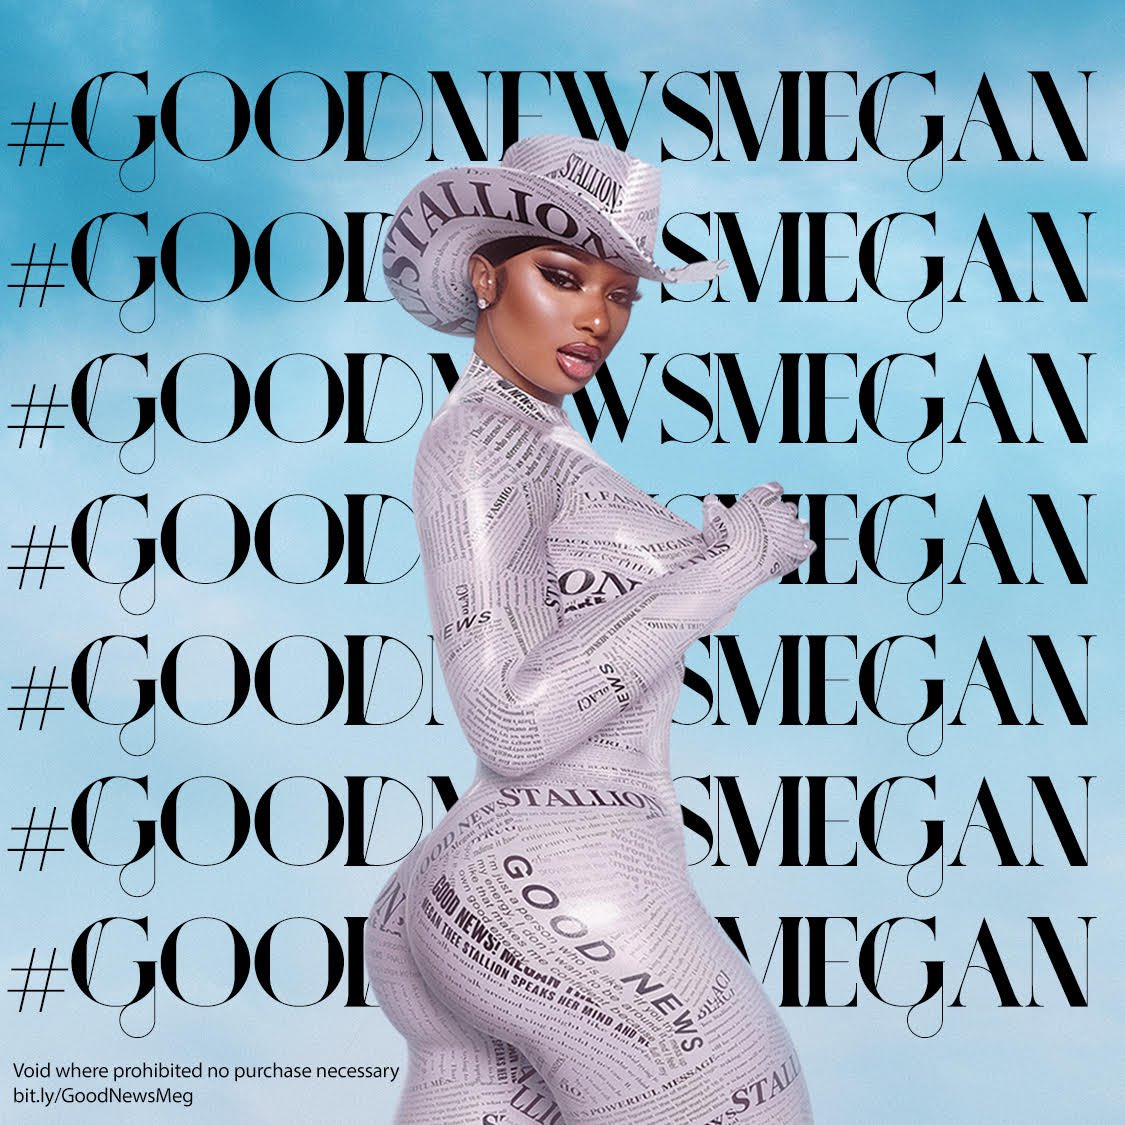 Hotties let's celebrate the GRAMMY nominations and my new album!!! Drop your cashapp and #GoodNewsMegan to win some $$$ Stream Good News here: ()